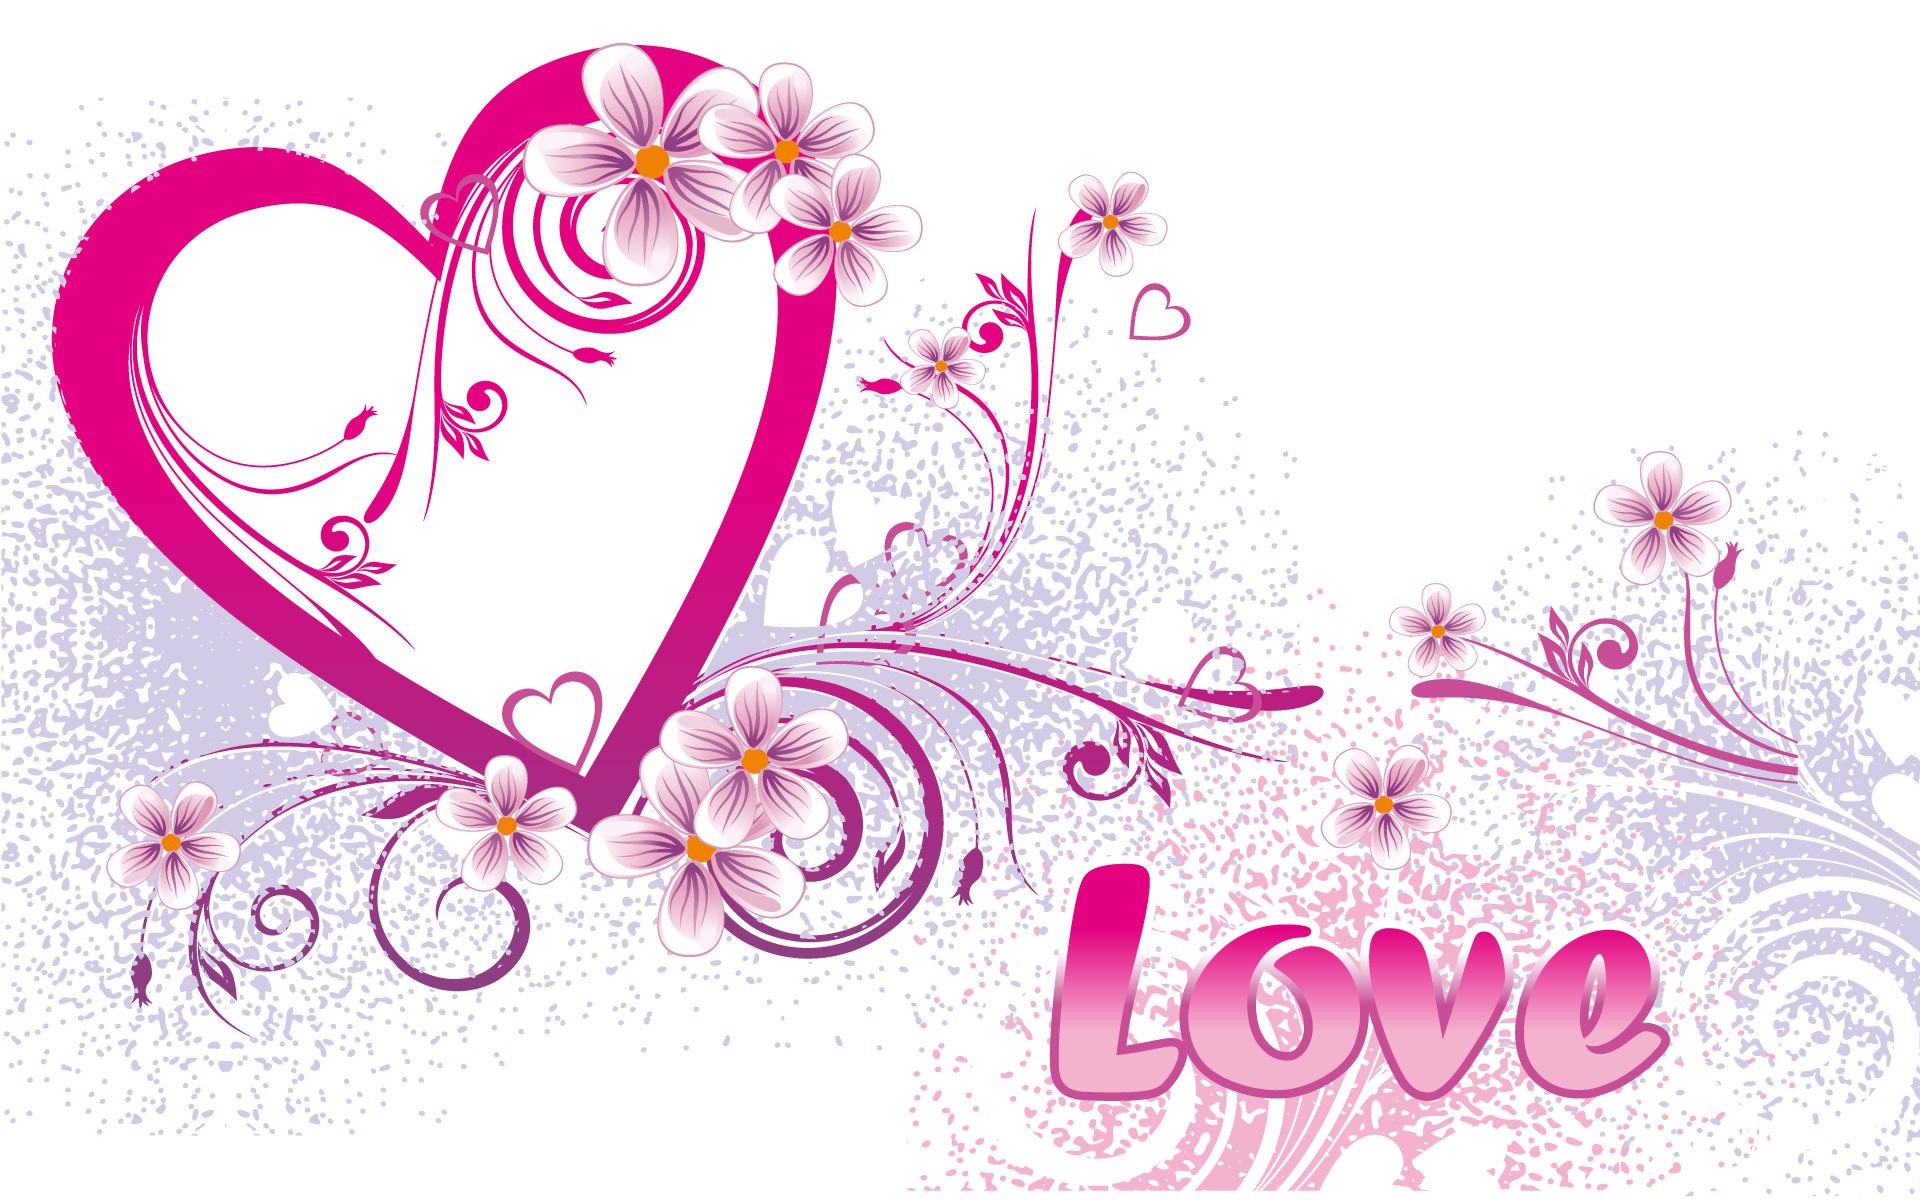 All Love Wallpaper Images : oktober 2012 FANcY FAcTS